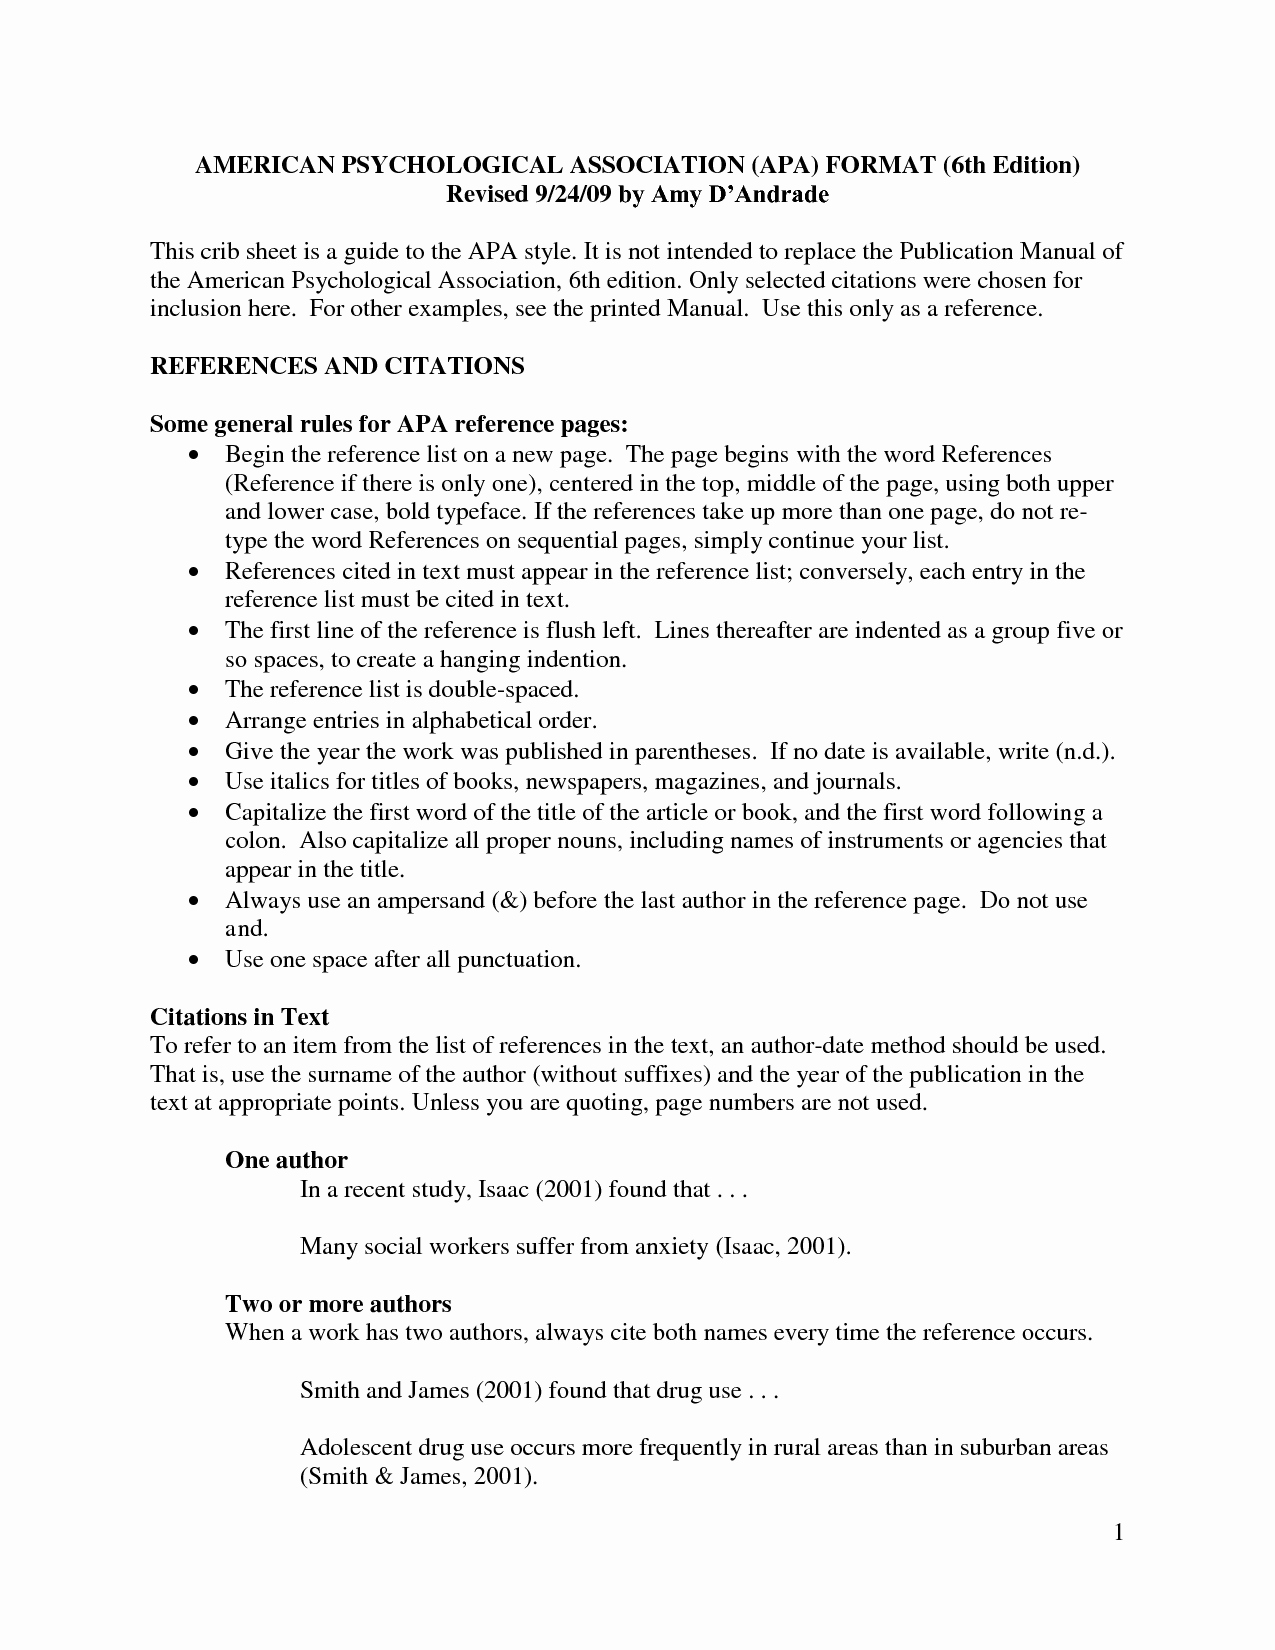 Apa format Paper 6th Edition Inspirational Best S Of Outline Template Apa 6th Ed Apa Outline